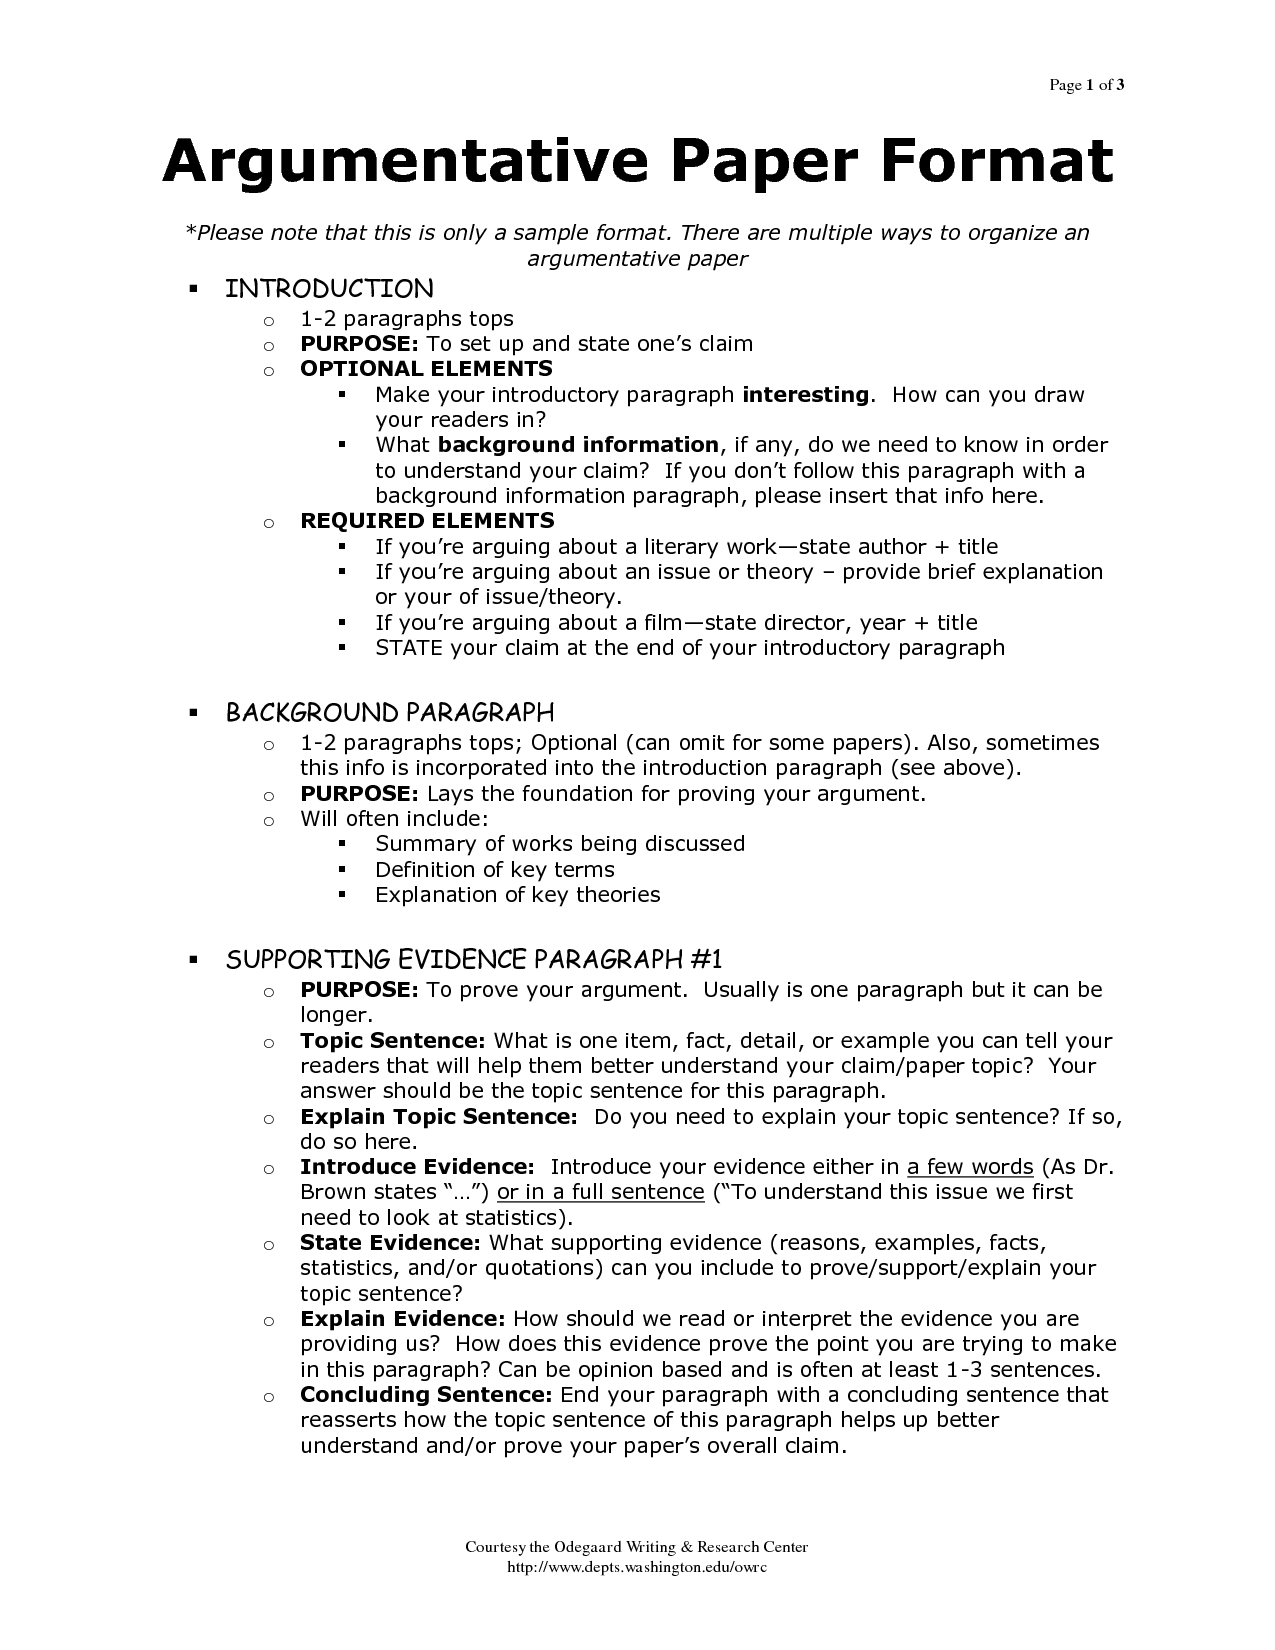 003 Essay Example What Is The Main Purpose Of An Stirring Argumentative Structure Outline For Full